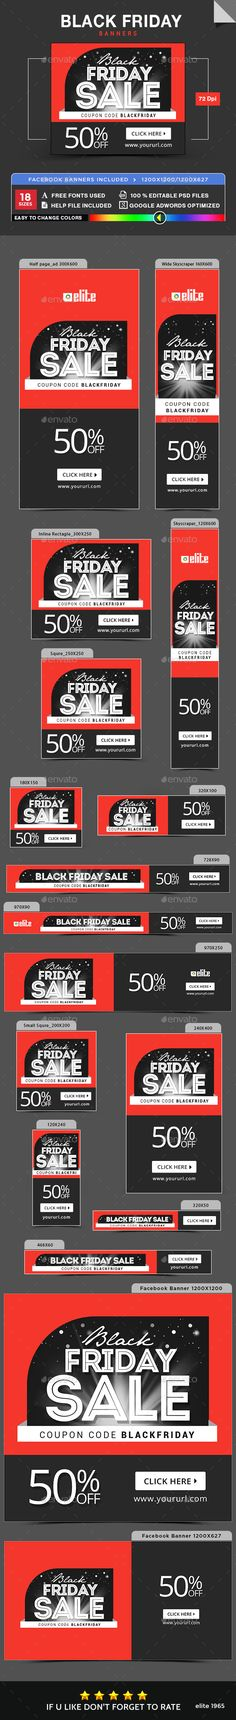 Black Friday Banner Design Ads Template - Banners & Ads Web Elements Banner PSD Template. Download here: https://graphicriver.net/item/black-friday-banners/18711906?ref=yinkira